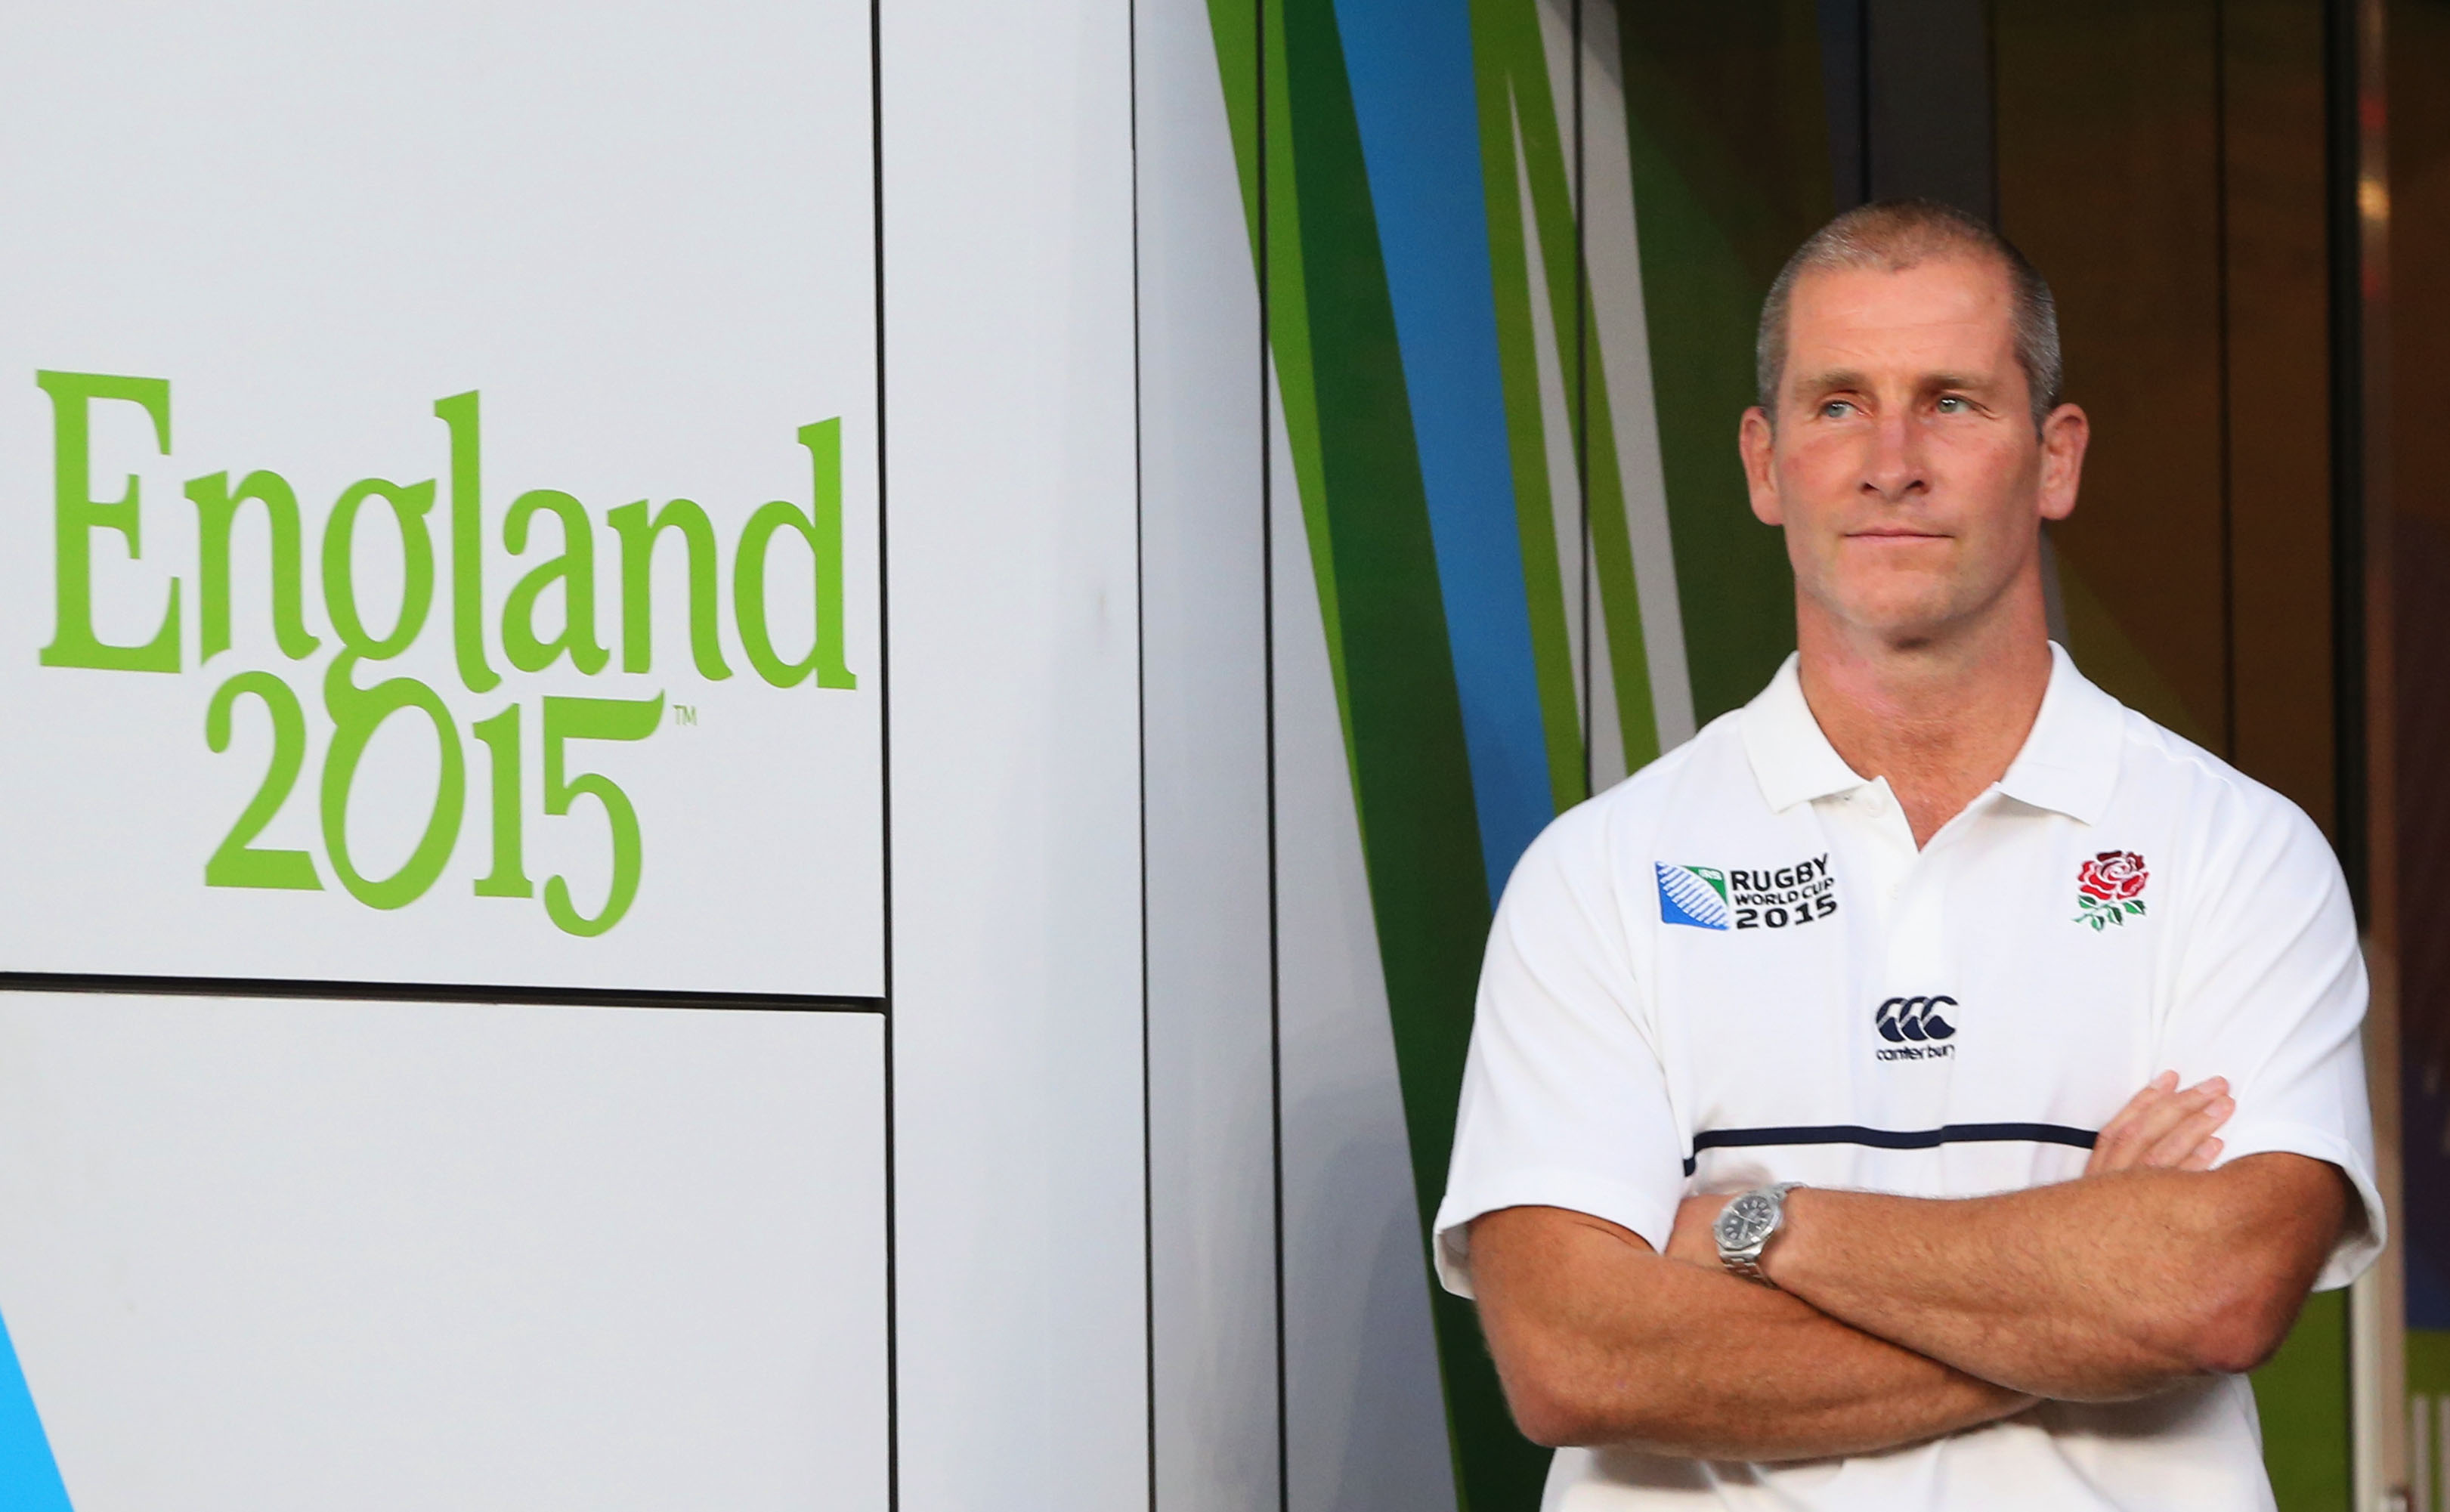 LONDON, ENGLAND - SEPTEMBER 18: Stuart Lancaster the head coach of England looks on during the 2015 Rugby World Cup Pool A match between England and Fiji at Twickenham Stadium on September 18, 2015 in London, United Kingdom. (Photo by David Rogers/Getty Images)